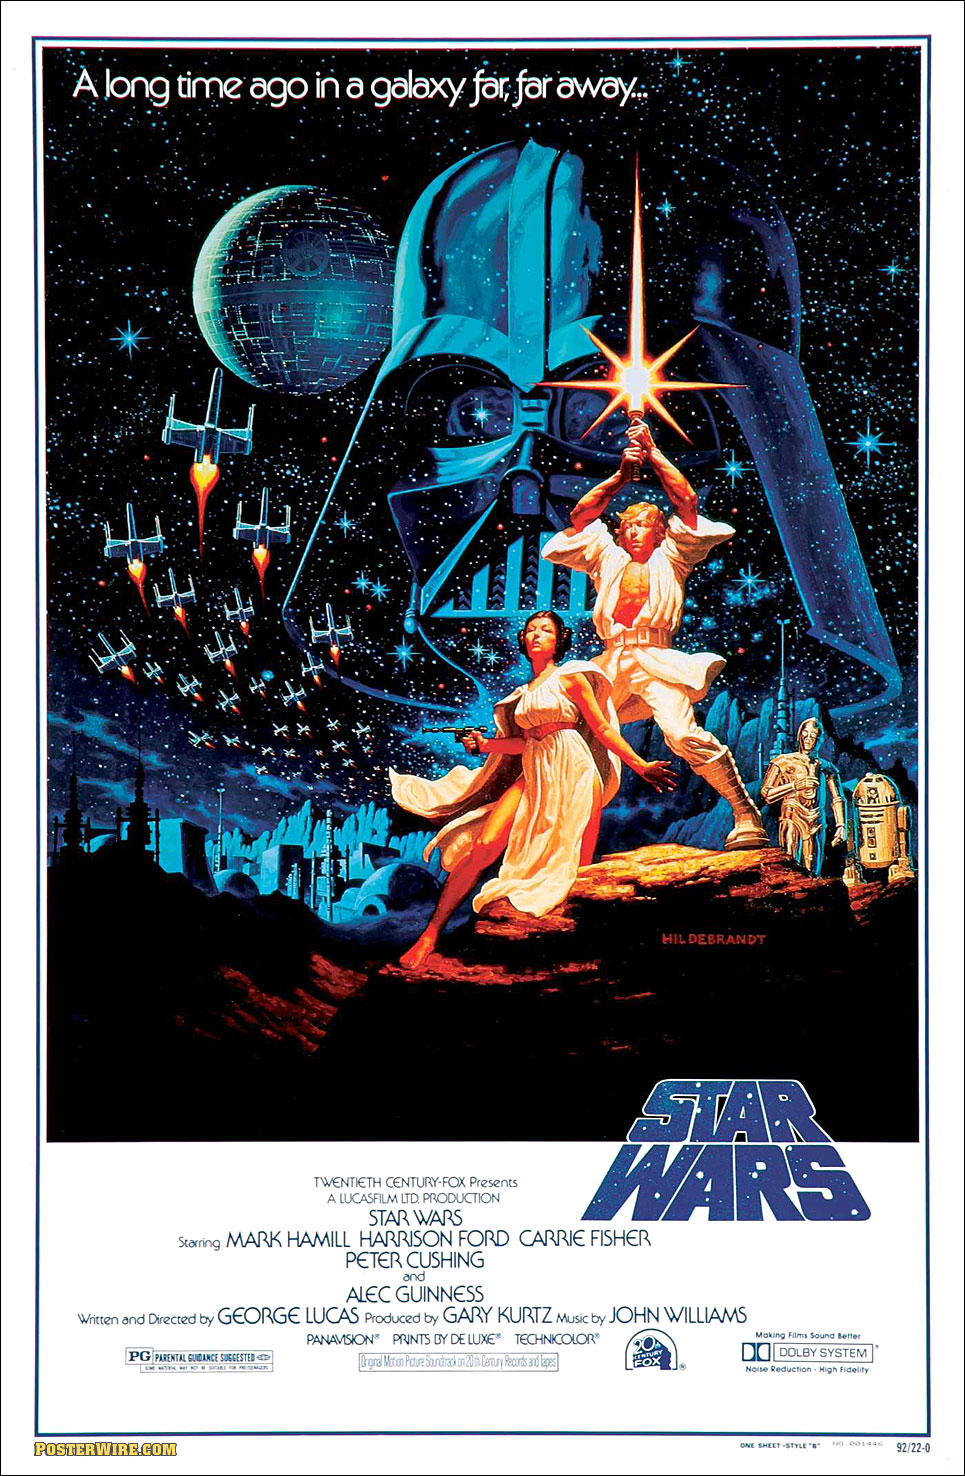 Drawn poster star wars Hand Blog » Edwin Manly